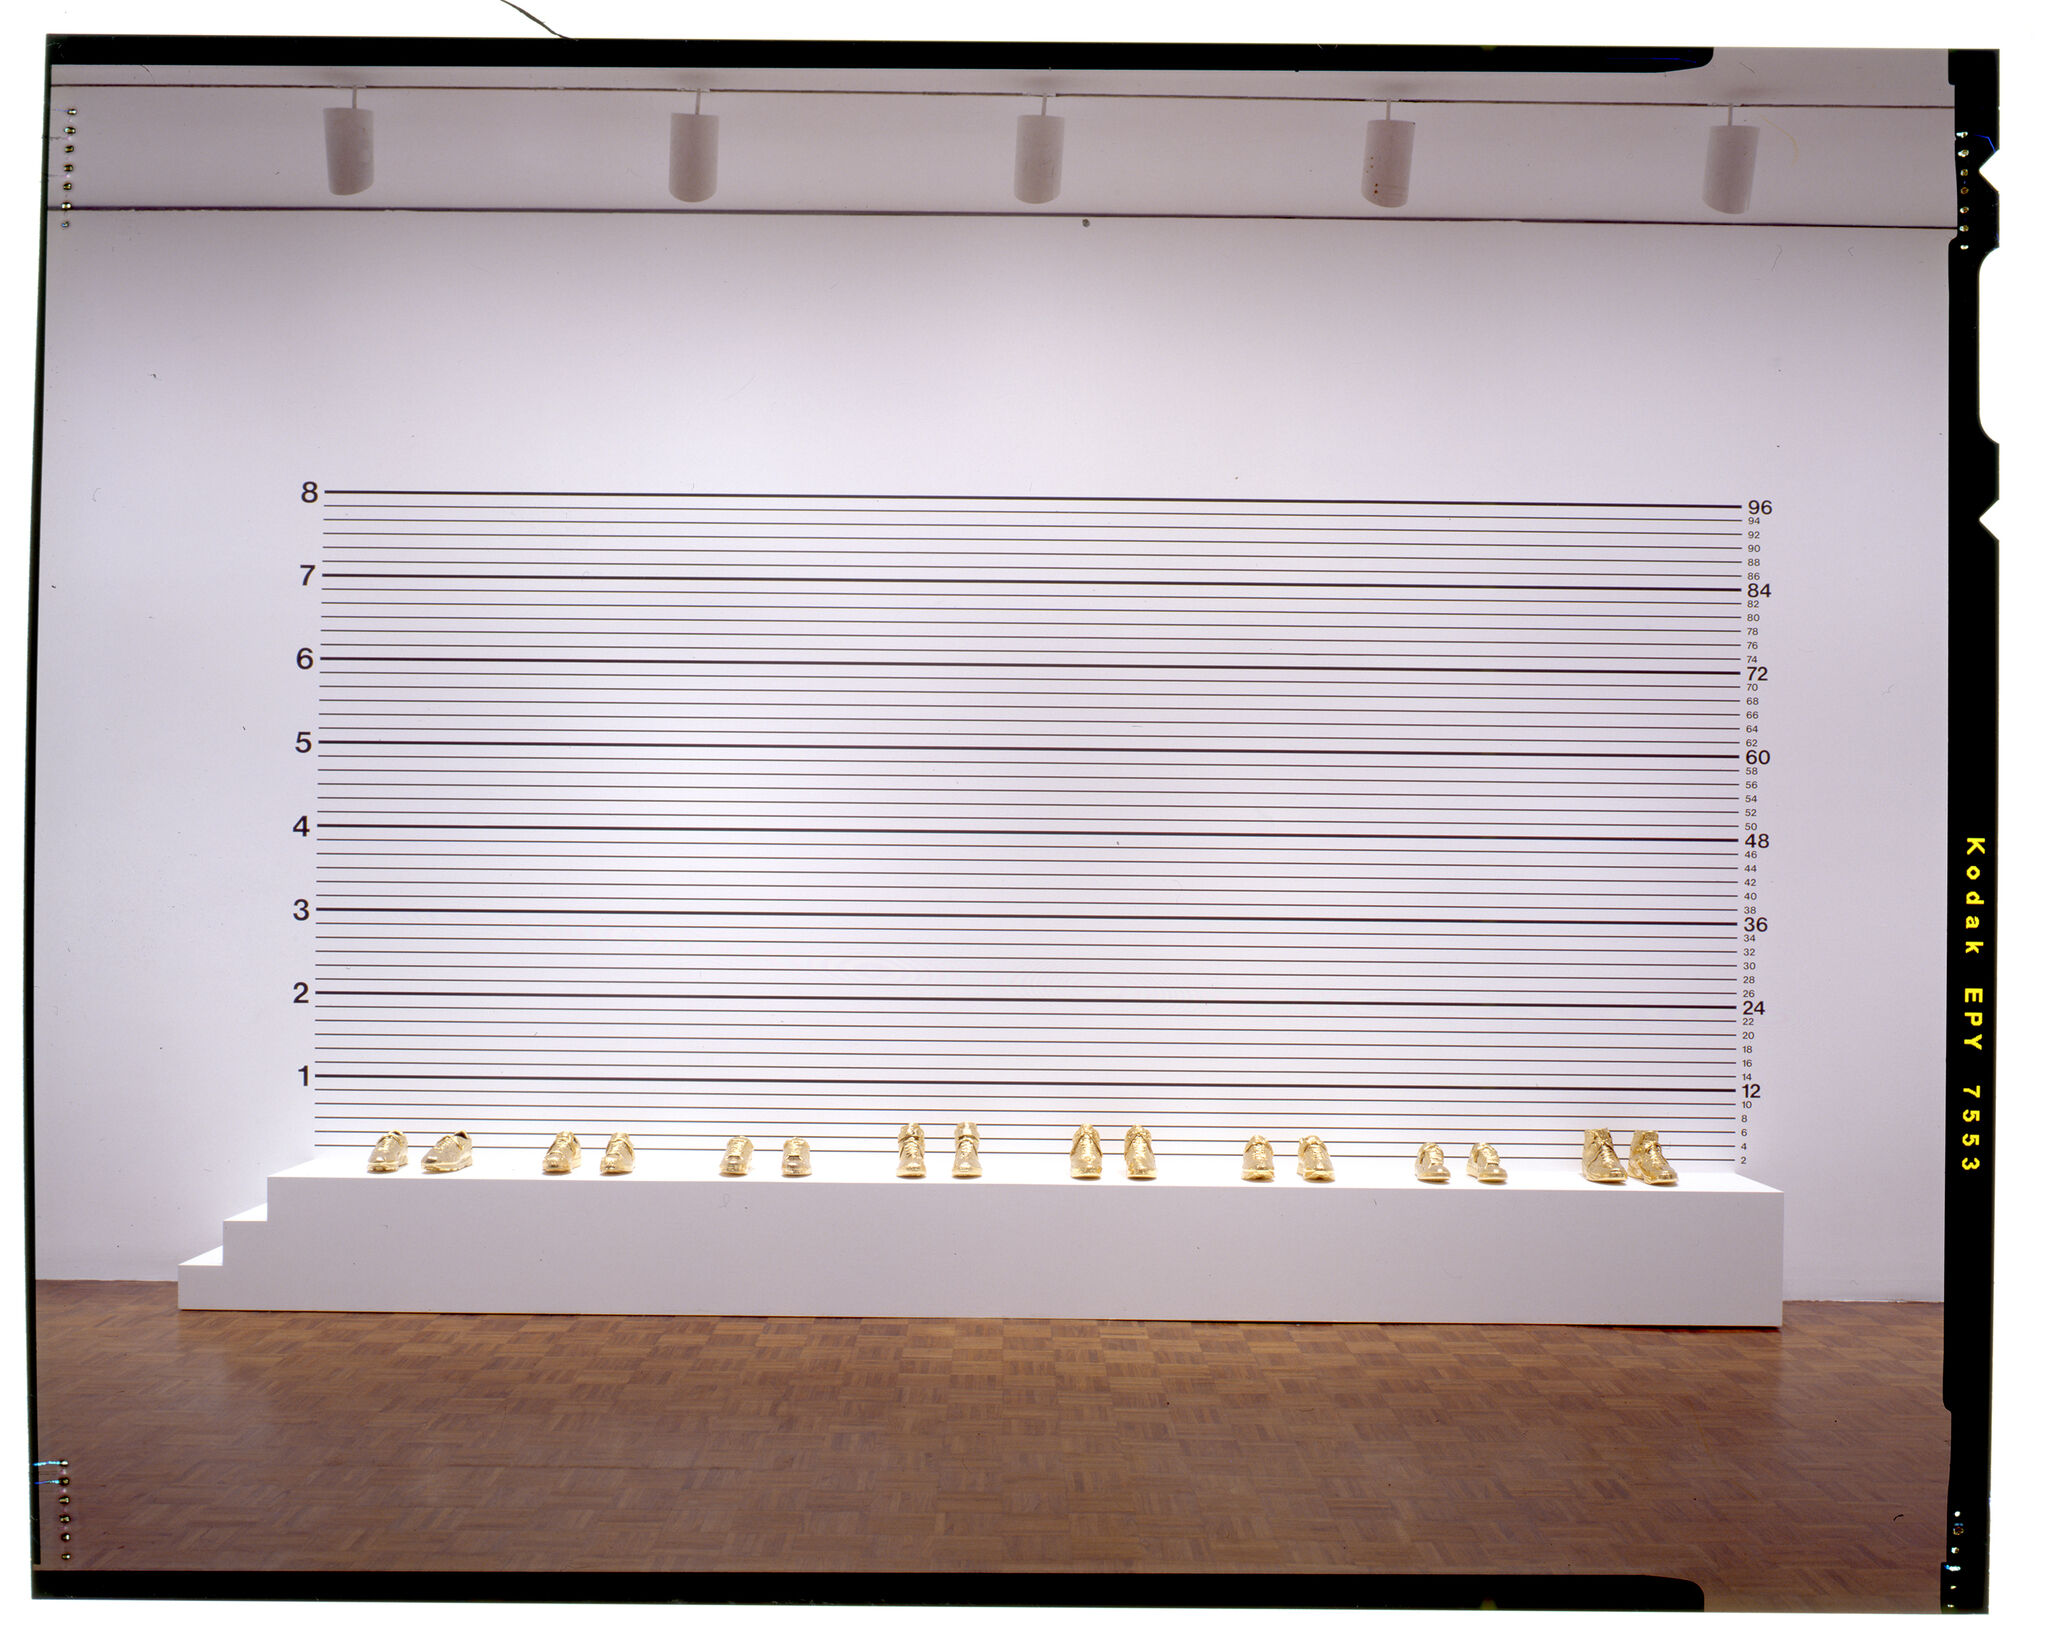 An installation view made up of golden shoes displayed in a line in front of a wall with measurements.